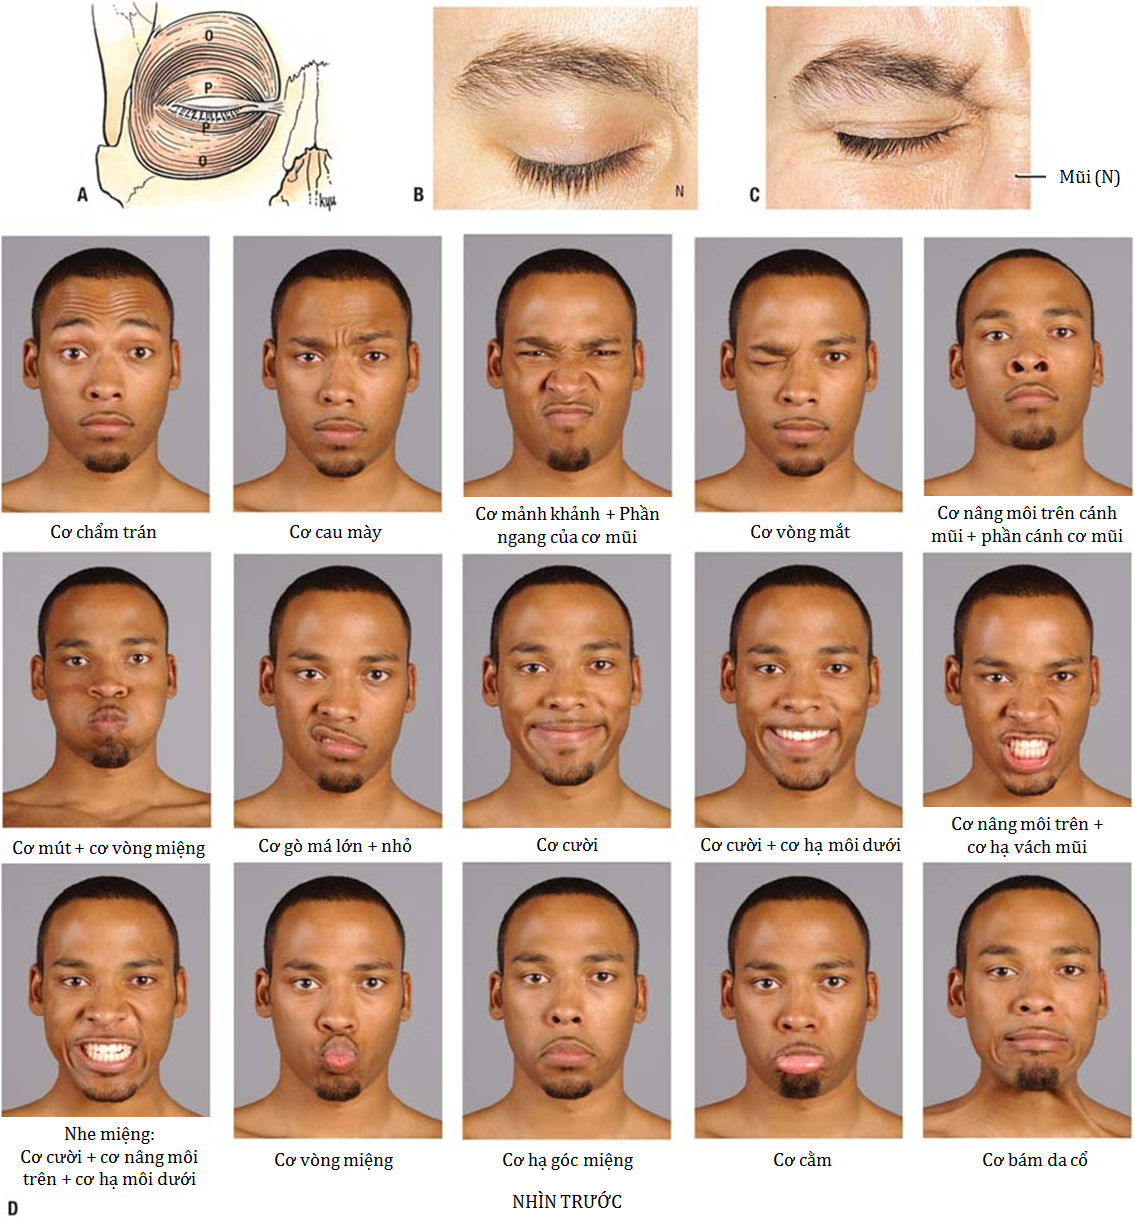 Các biểu hiện nét mặt Agur, Anne M.R., Dalley, Arthur F. Grant's Atlas of Anatomy, 12th Edition. Chapter 7.14 Muscles of facial expression. Lippincott Williams & Wilkins, 2009: 629-630